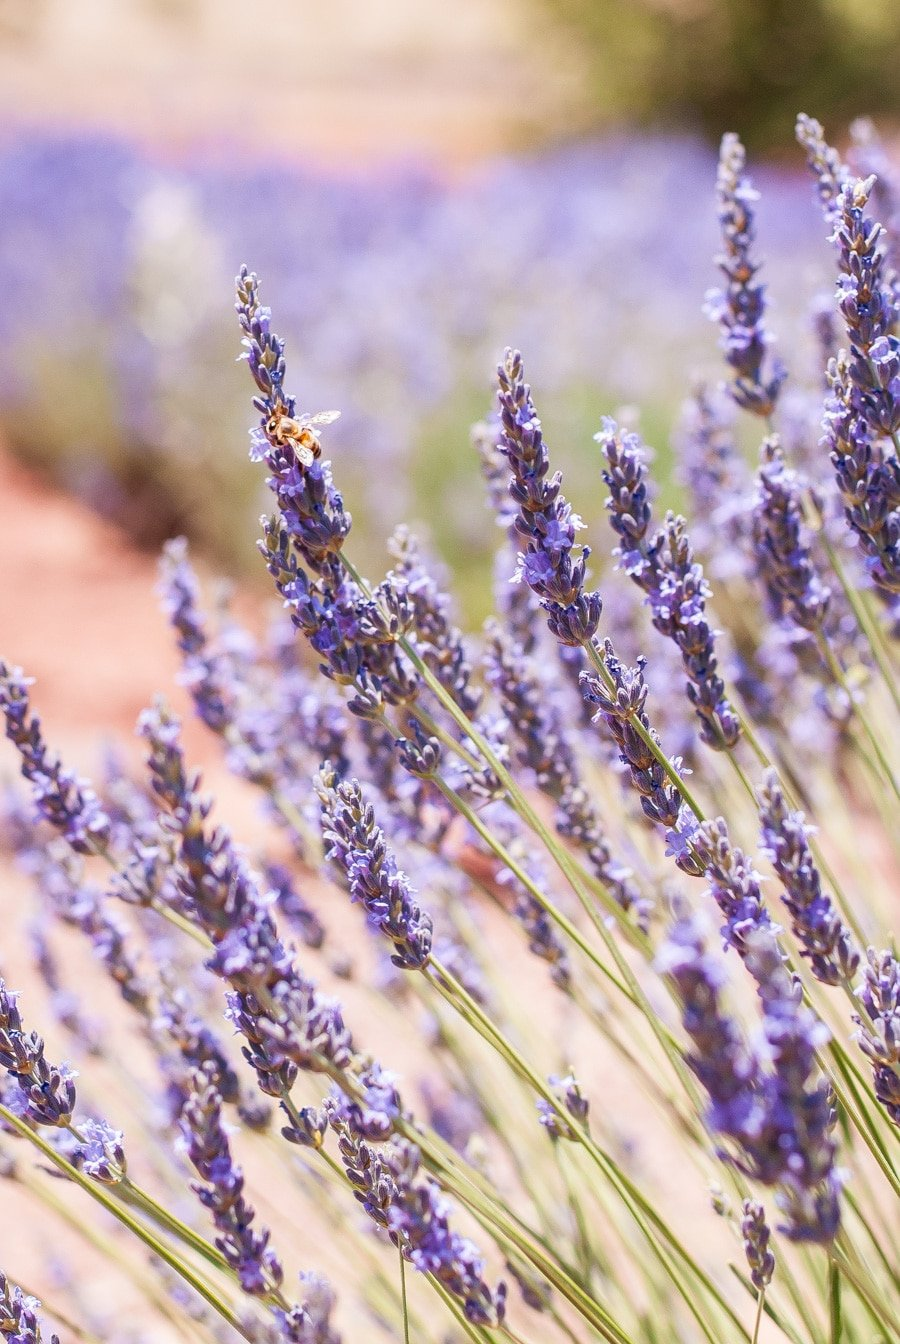 A bee that is hanging onto a stock of culinary lavender on a bush.